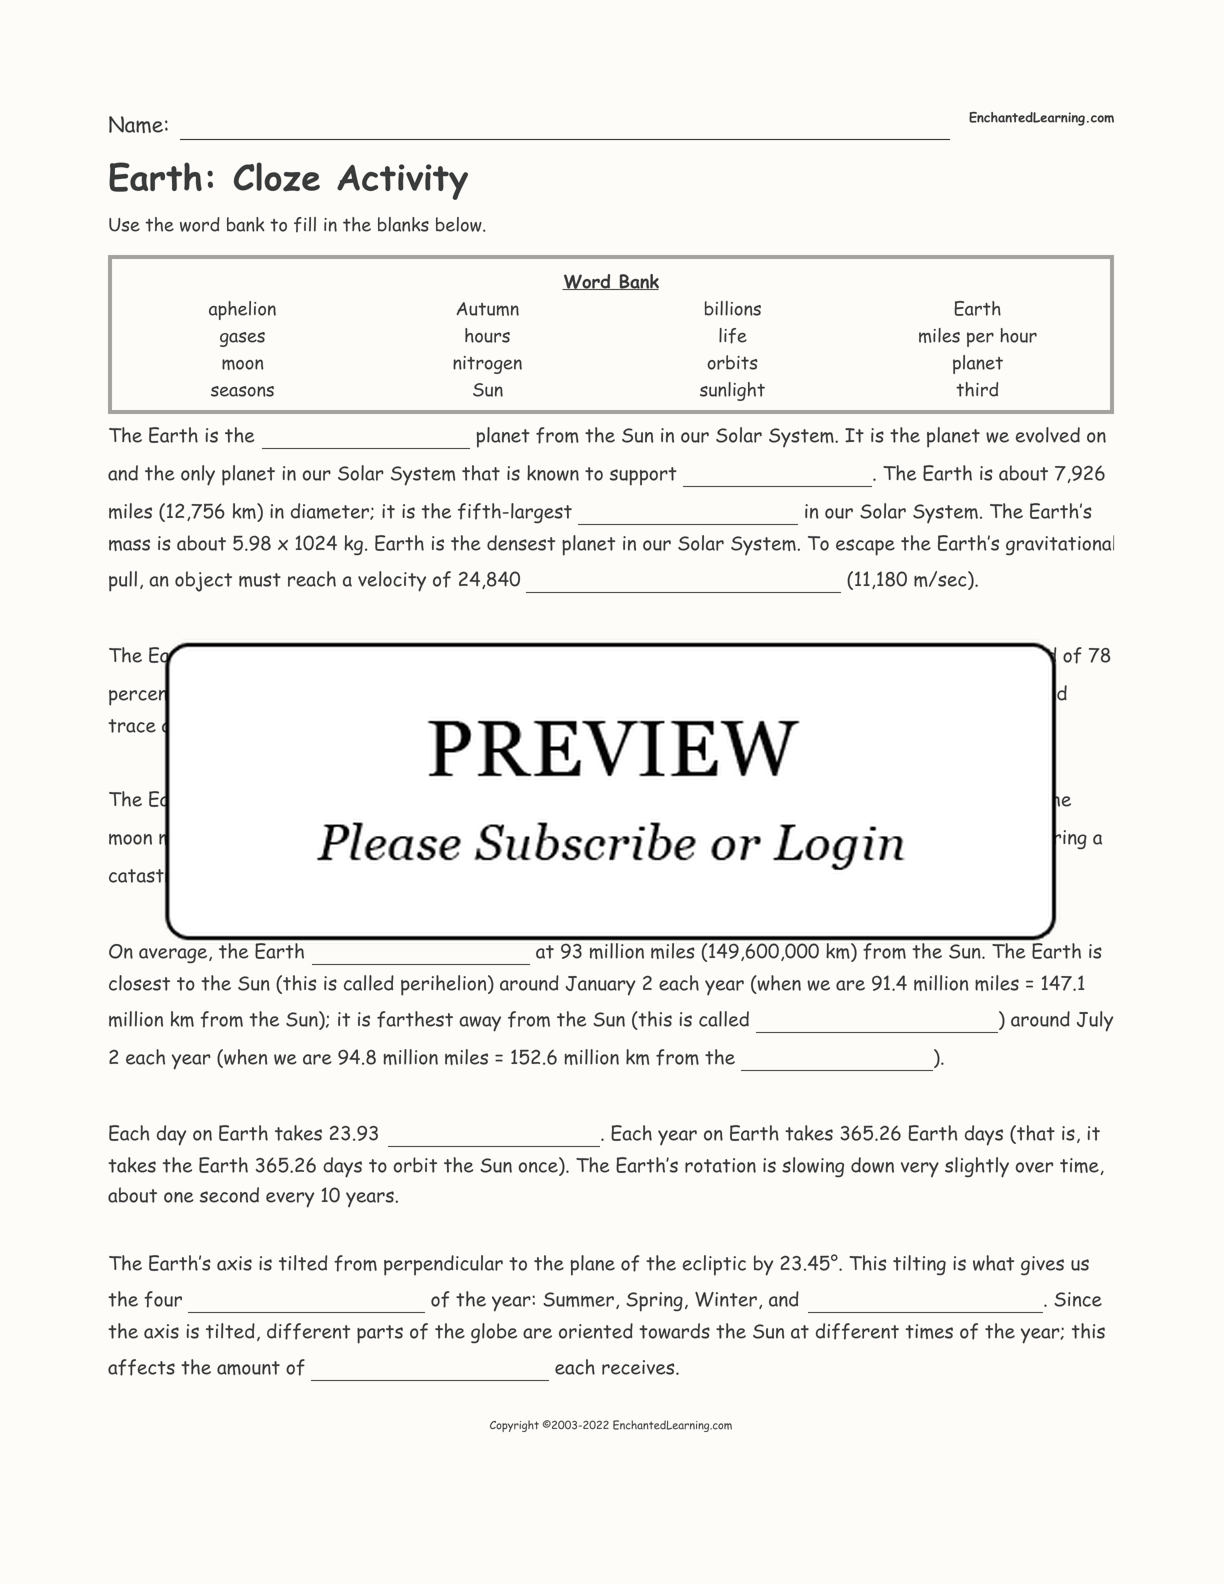 Earth: Cloze Activity interactive worksheet page 1